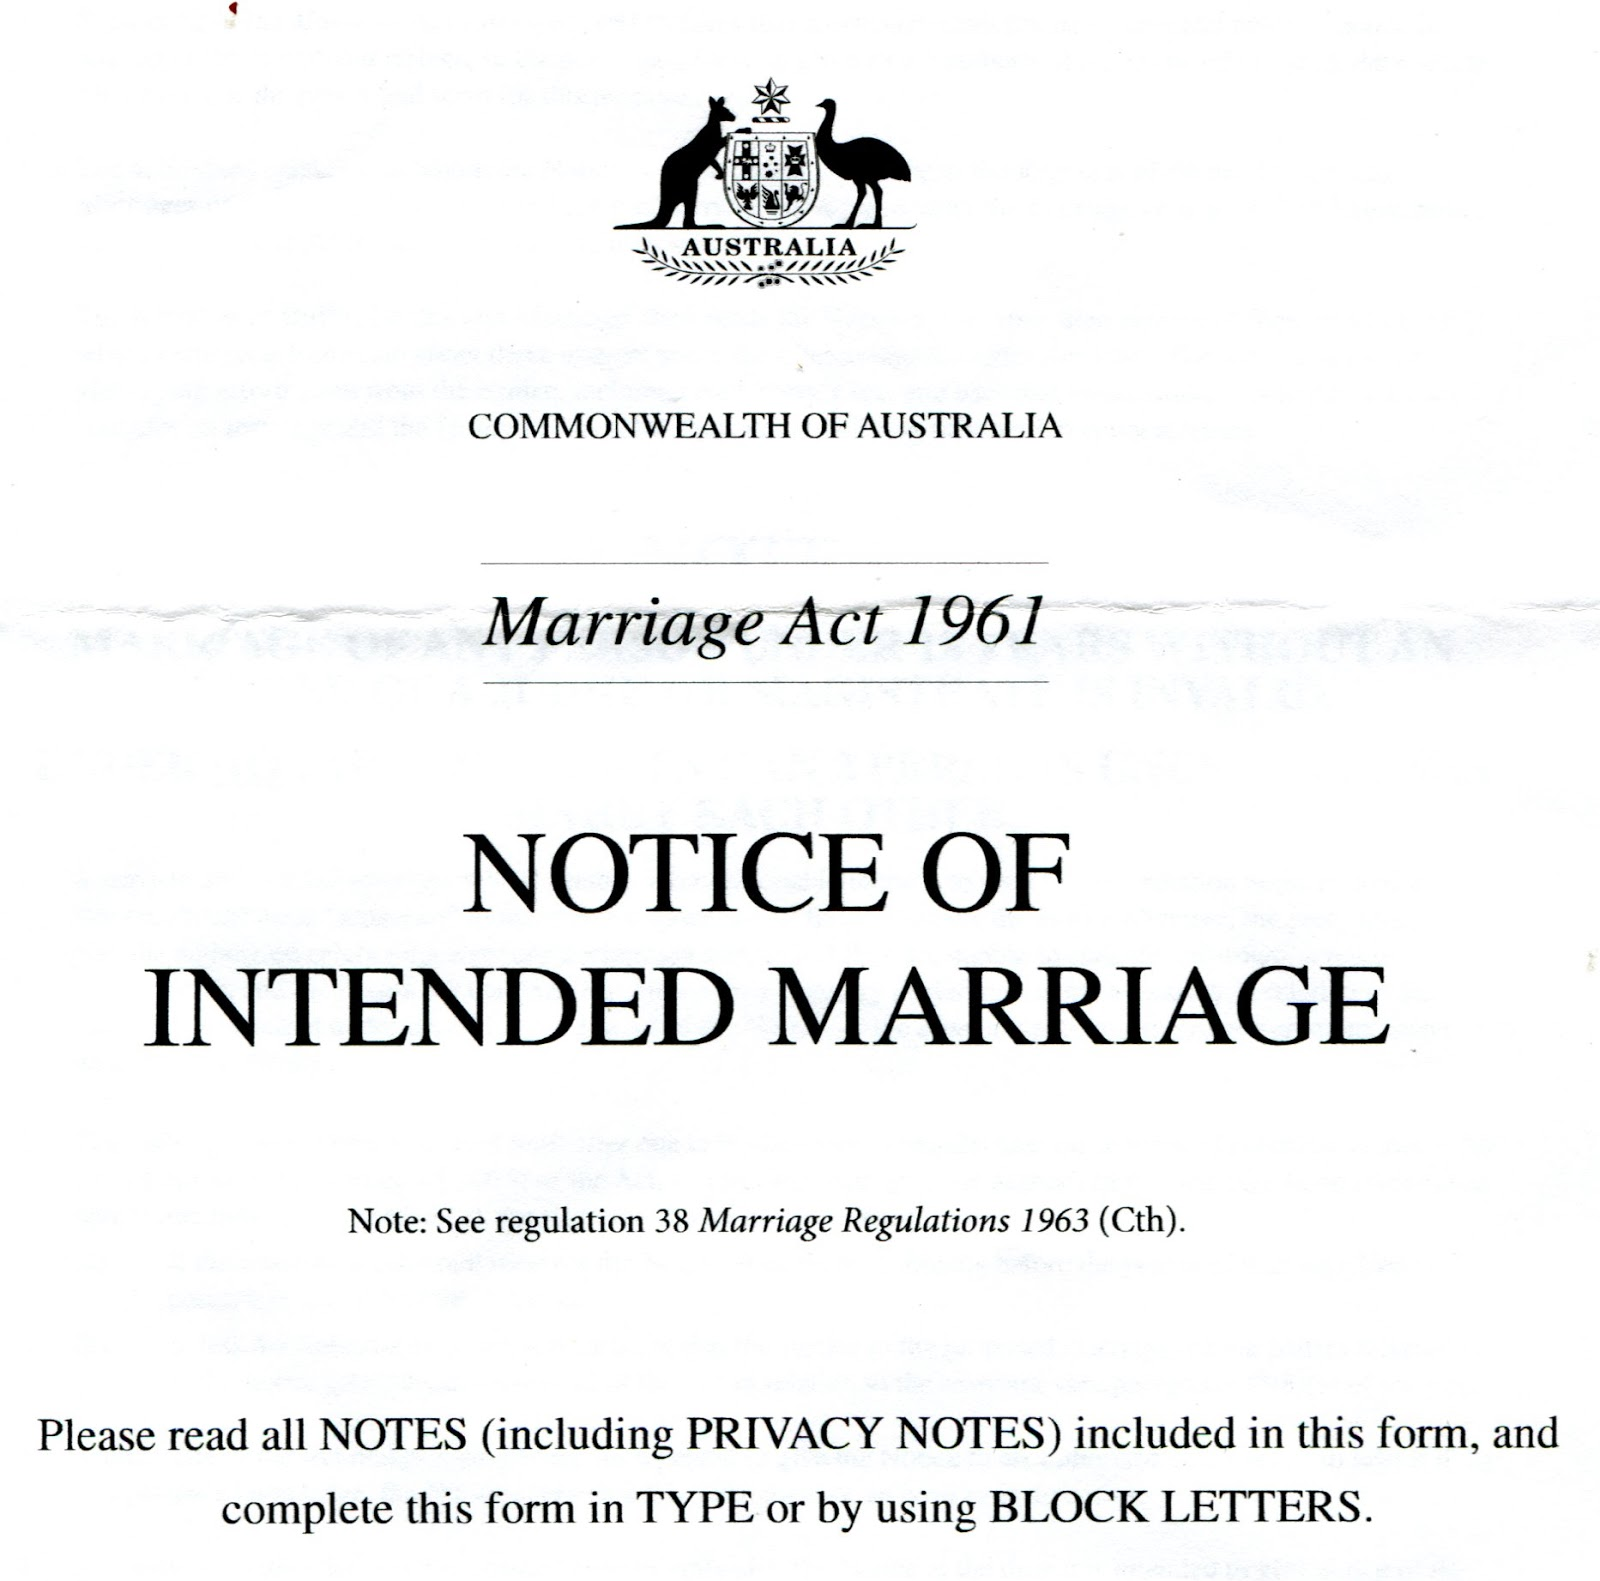 Life with HIV: Marriage papers lodged & paid, date set for our gay